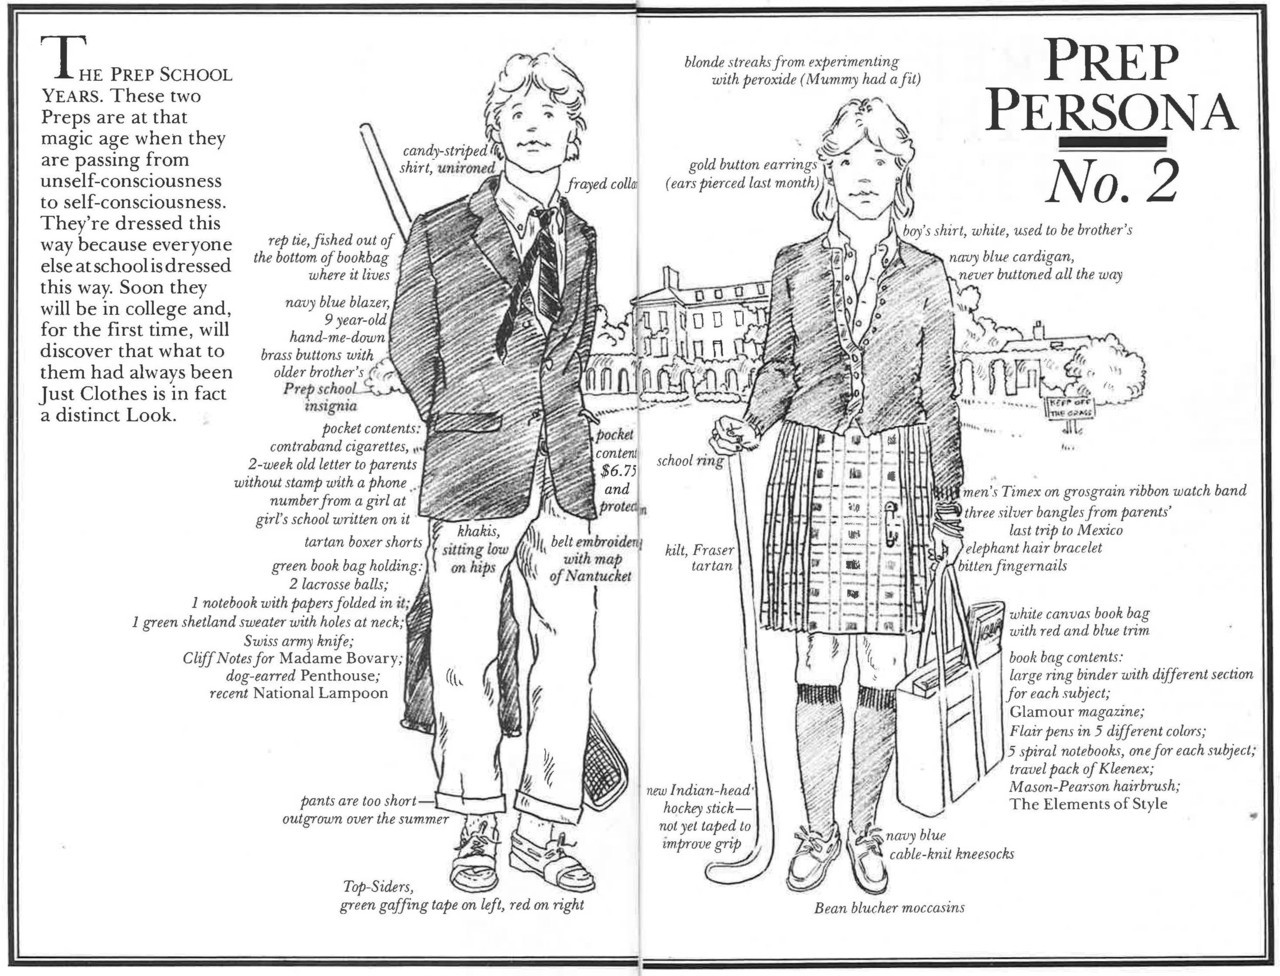 An excerpt from The Official Preppy Handbook, by Lisa Birnbach. Illustrations by Oliver Williams.